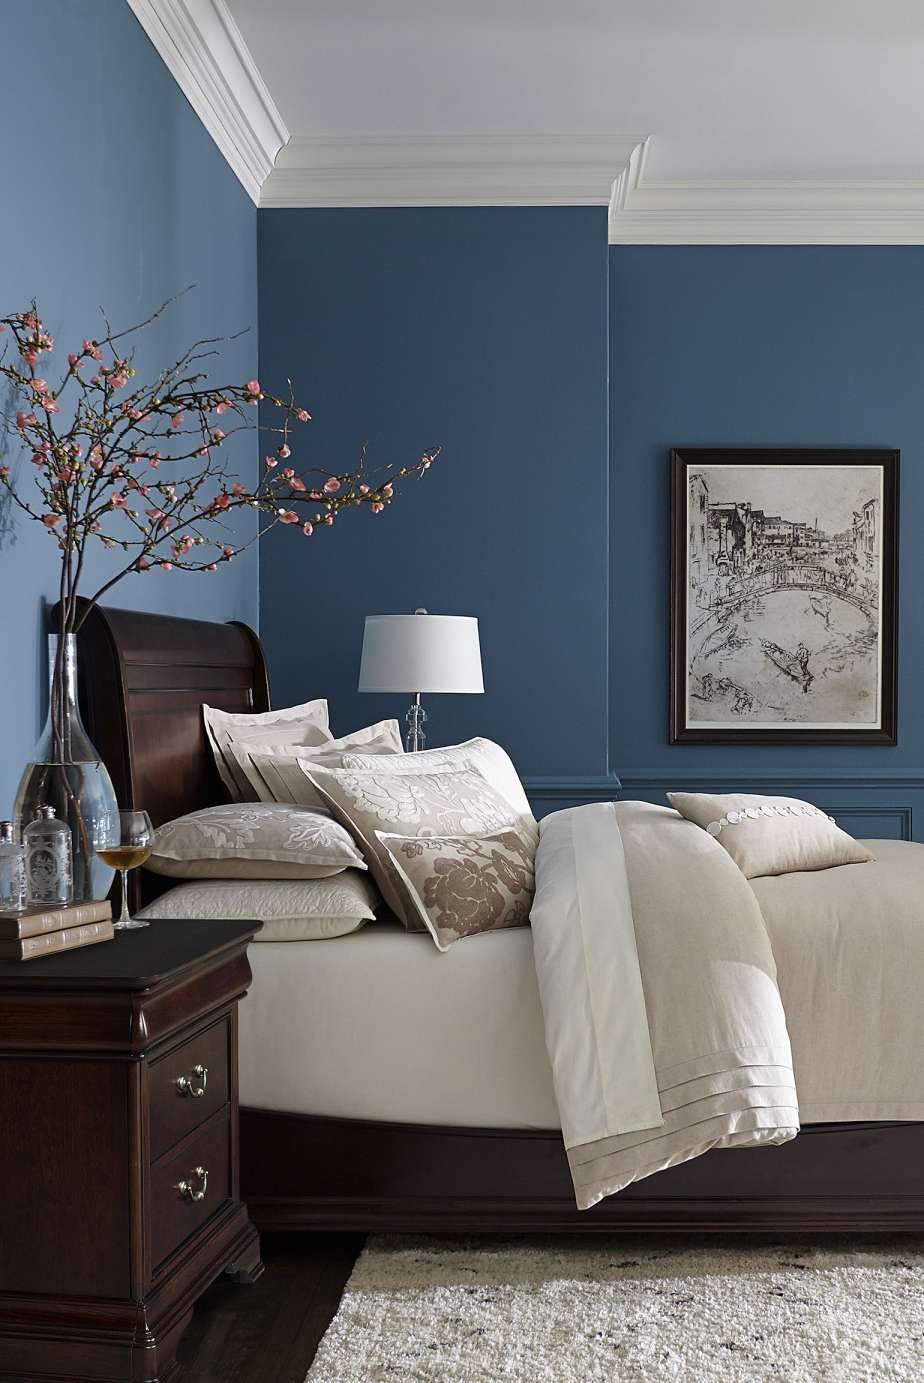 15 Best Paint Color Ideas For Bedroom Walls Gallery In 2020